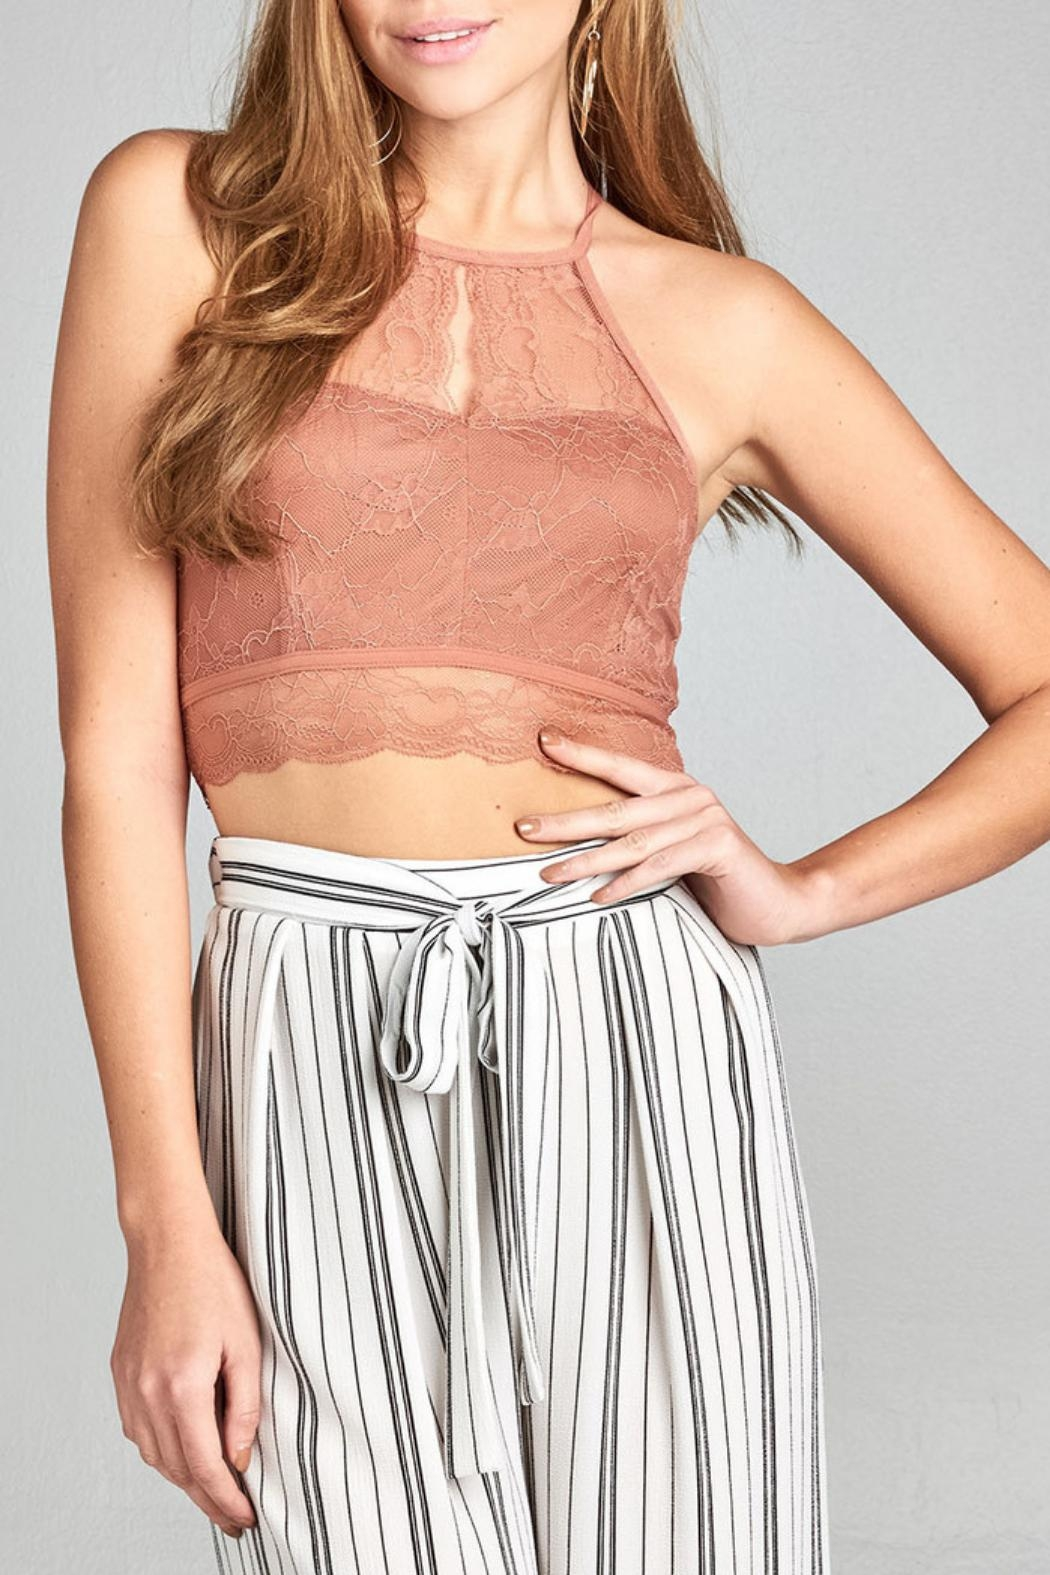 Active USA Dawn-Pink Lace Bralette - Main Image